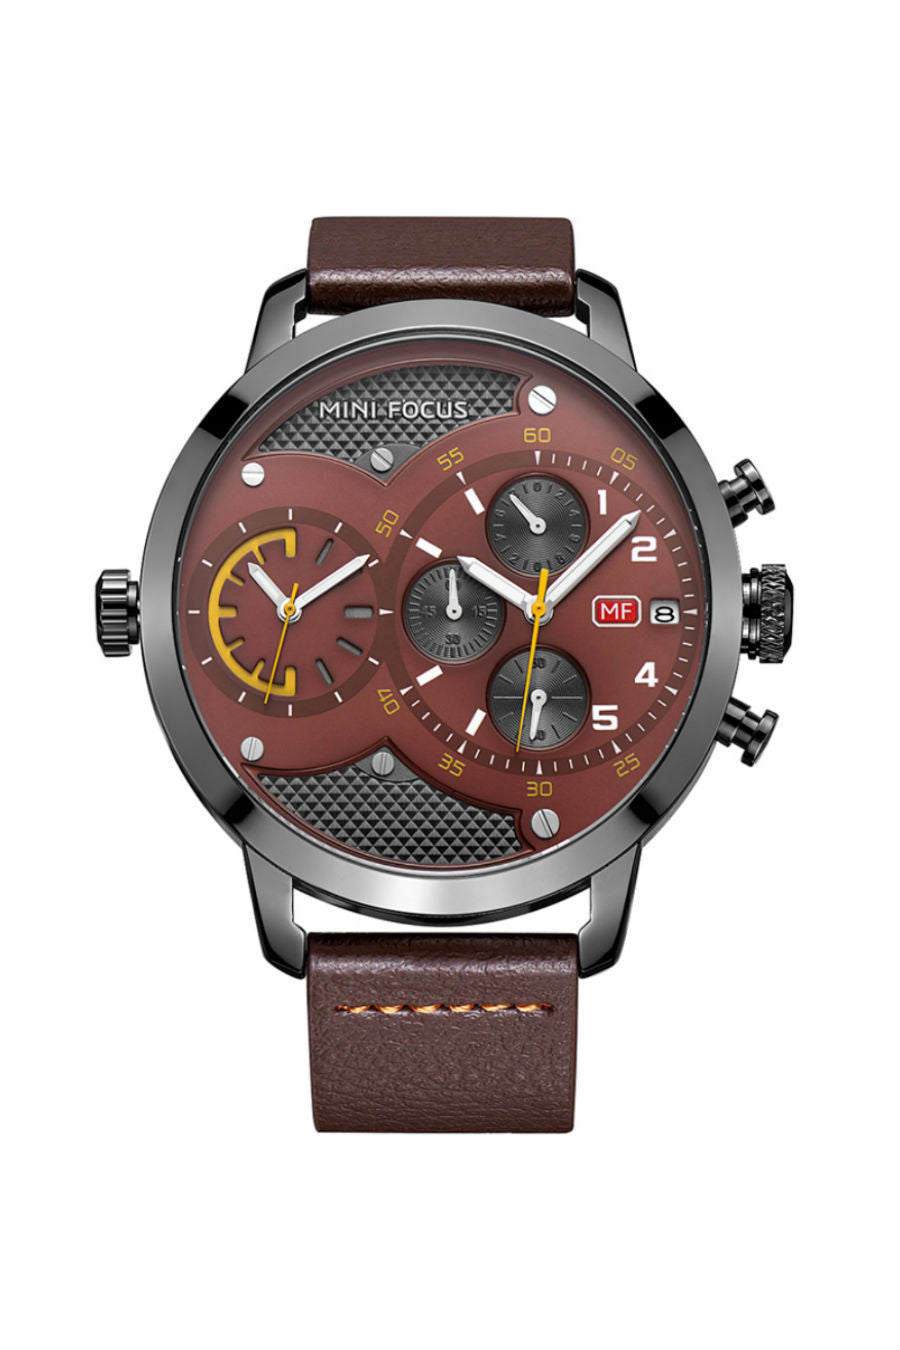 Large Dial Quartz Watch In Brown